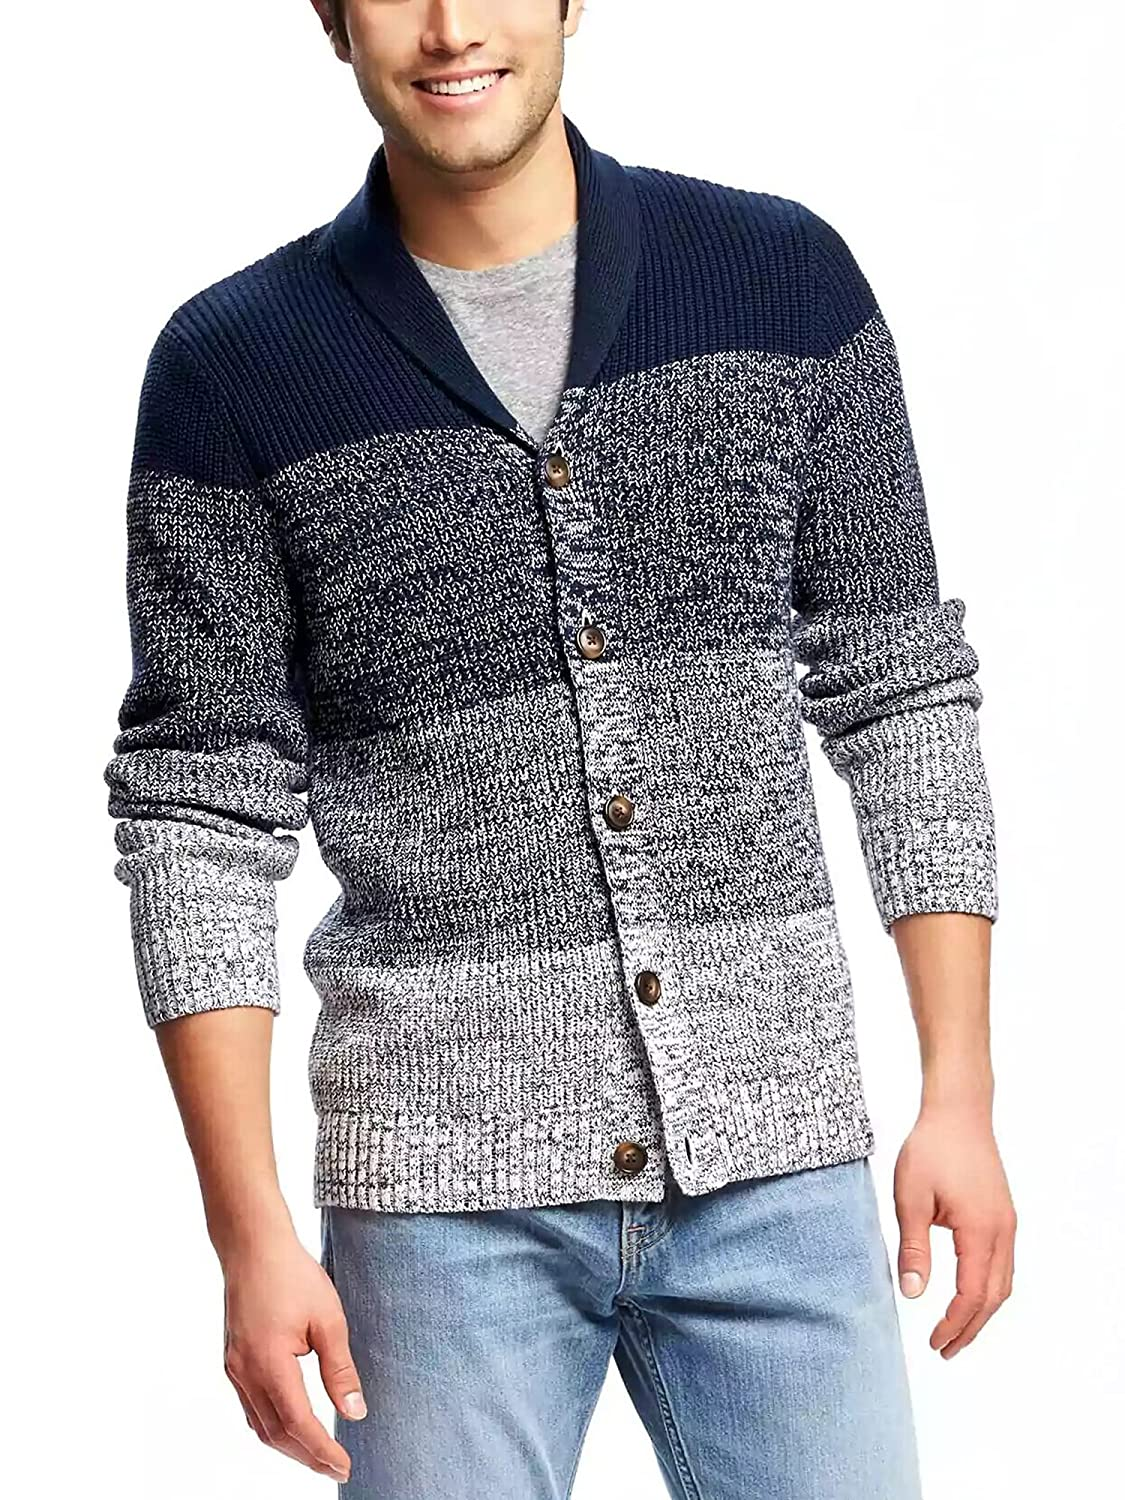 COOFANDY Men's Shawl Collar Cardigan Sweater Button Down Knitwear Overcoat AM002496